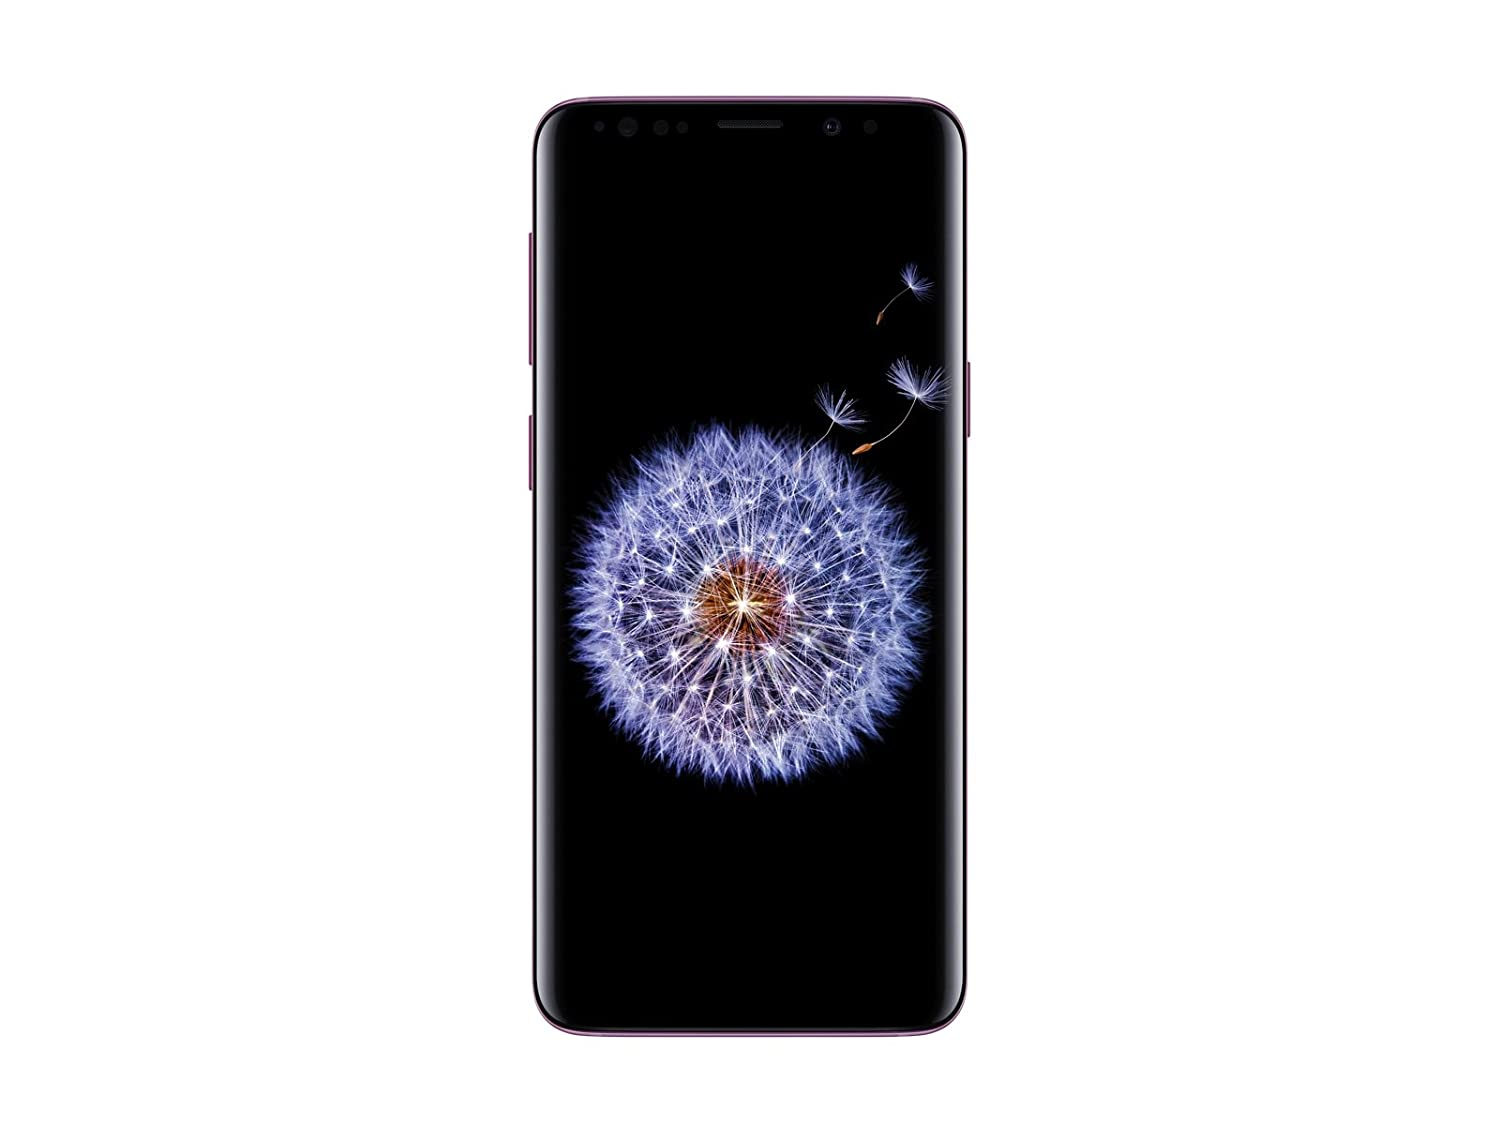 Samsung Galaxy S9 Unlocked Smartphone - Lilac Purple - US Warranty. This item will be released on March 16, 2018